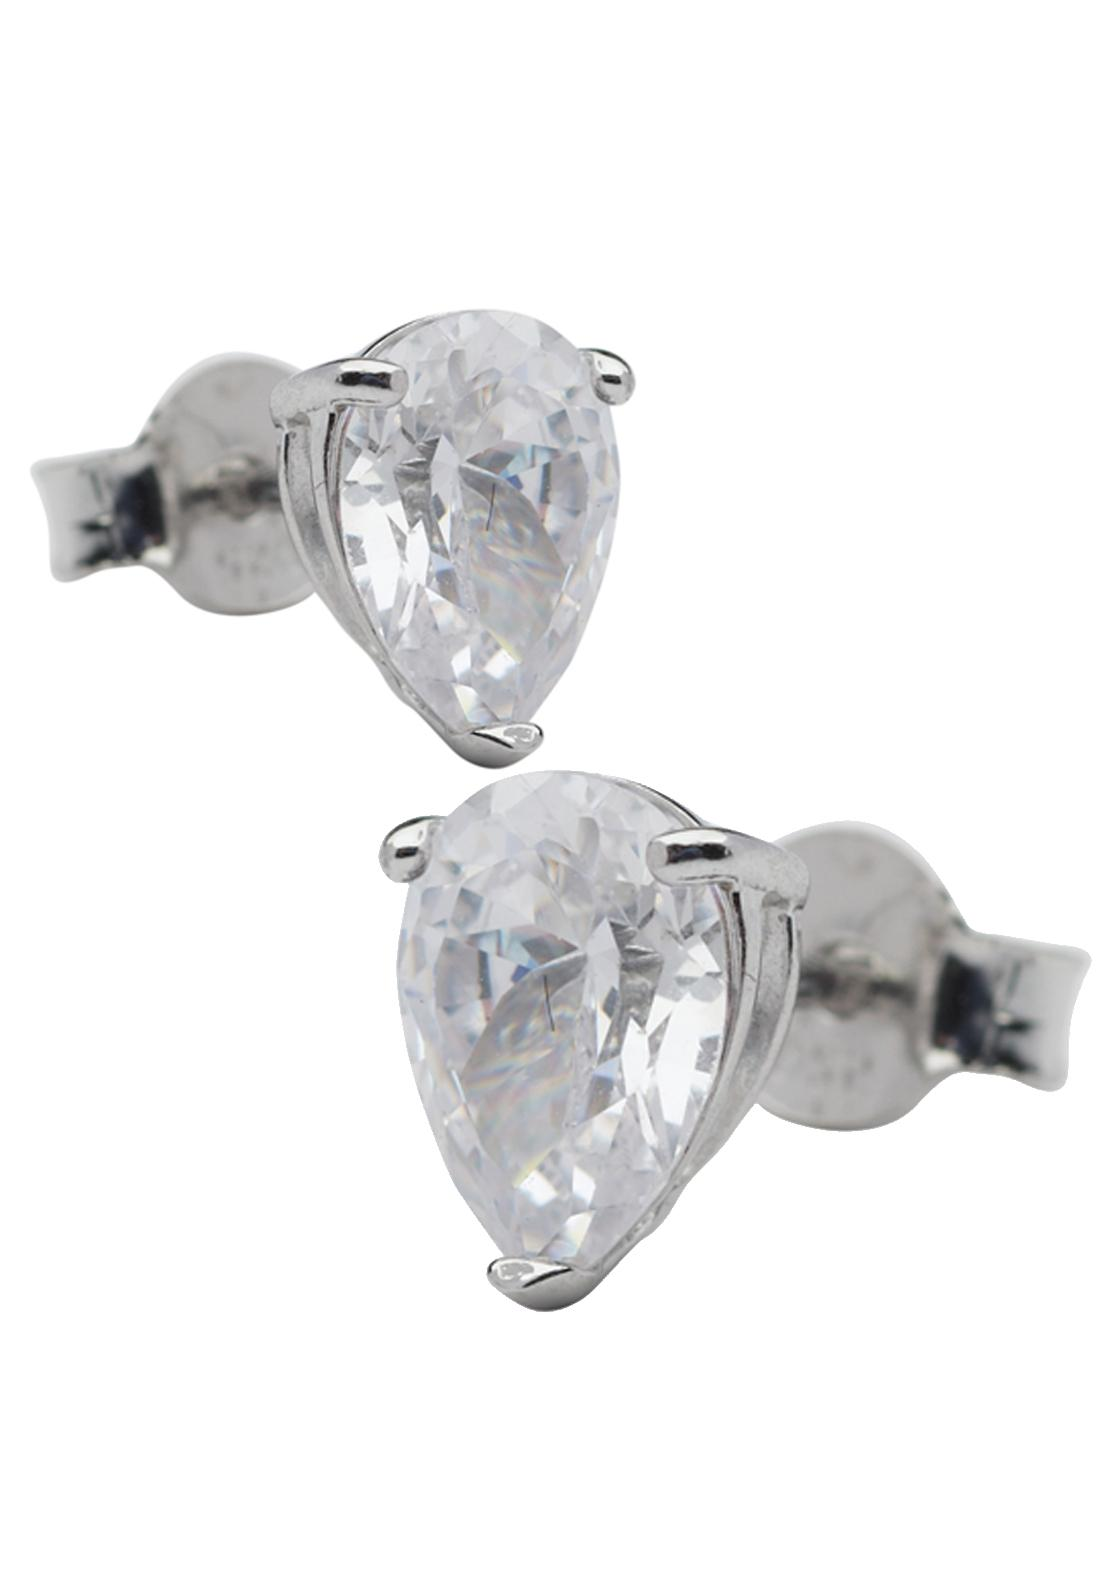 Killarney Crystal Opulence Teardrop Solitaire Earrings